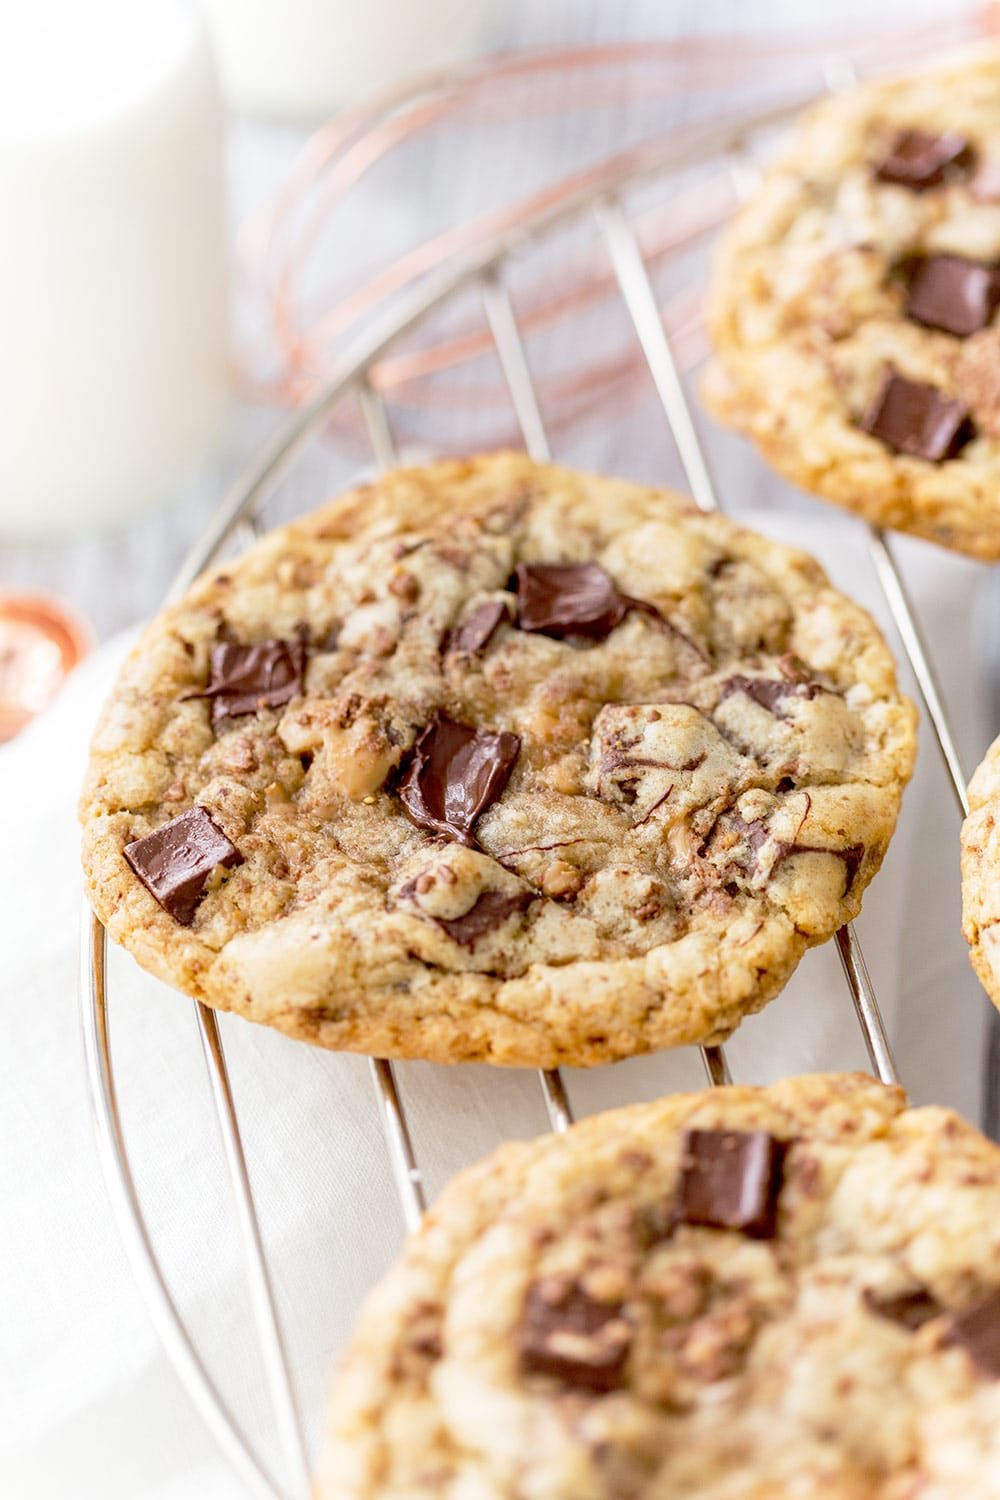 Chocolate Chunk Toffee Cookies